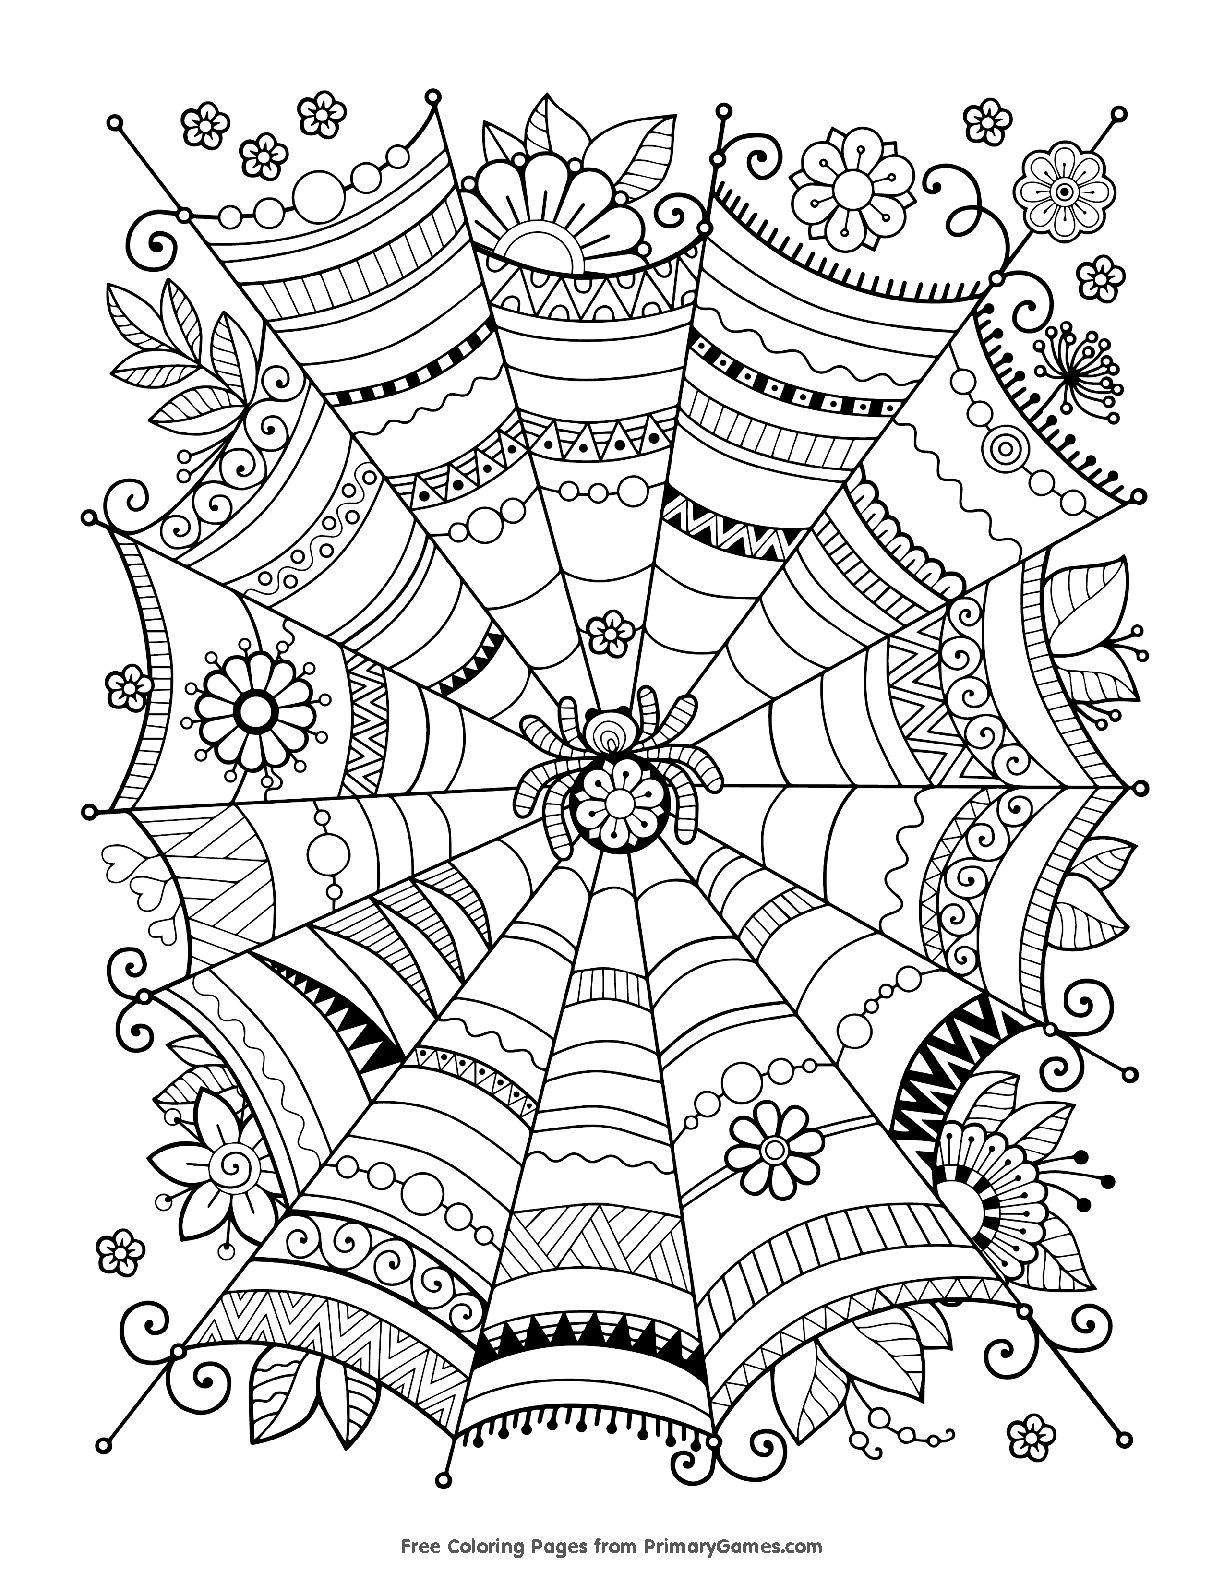 Pin by Valerie Bland on Coloring pages | Pinterest | Doodles, Adult ...